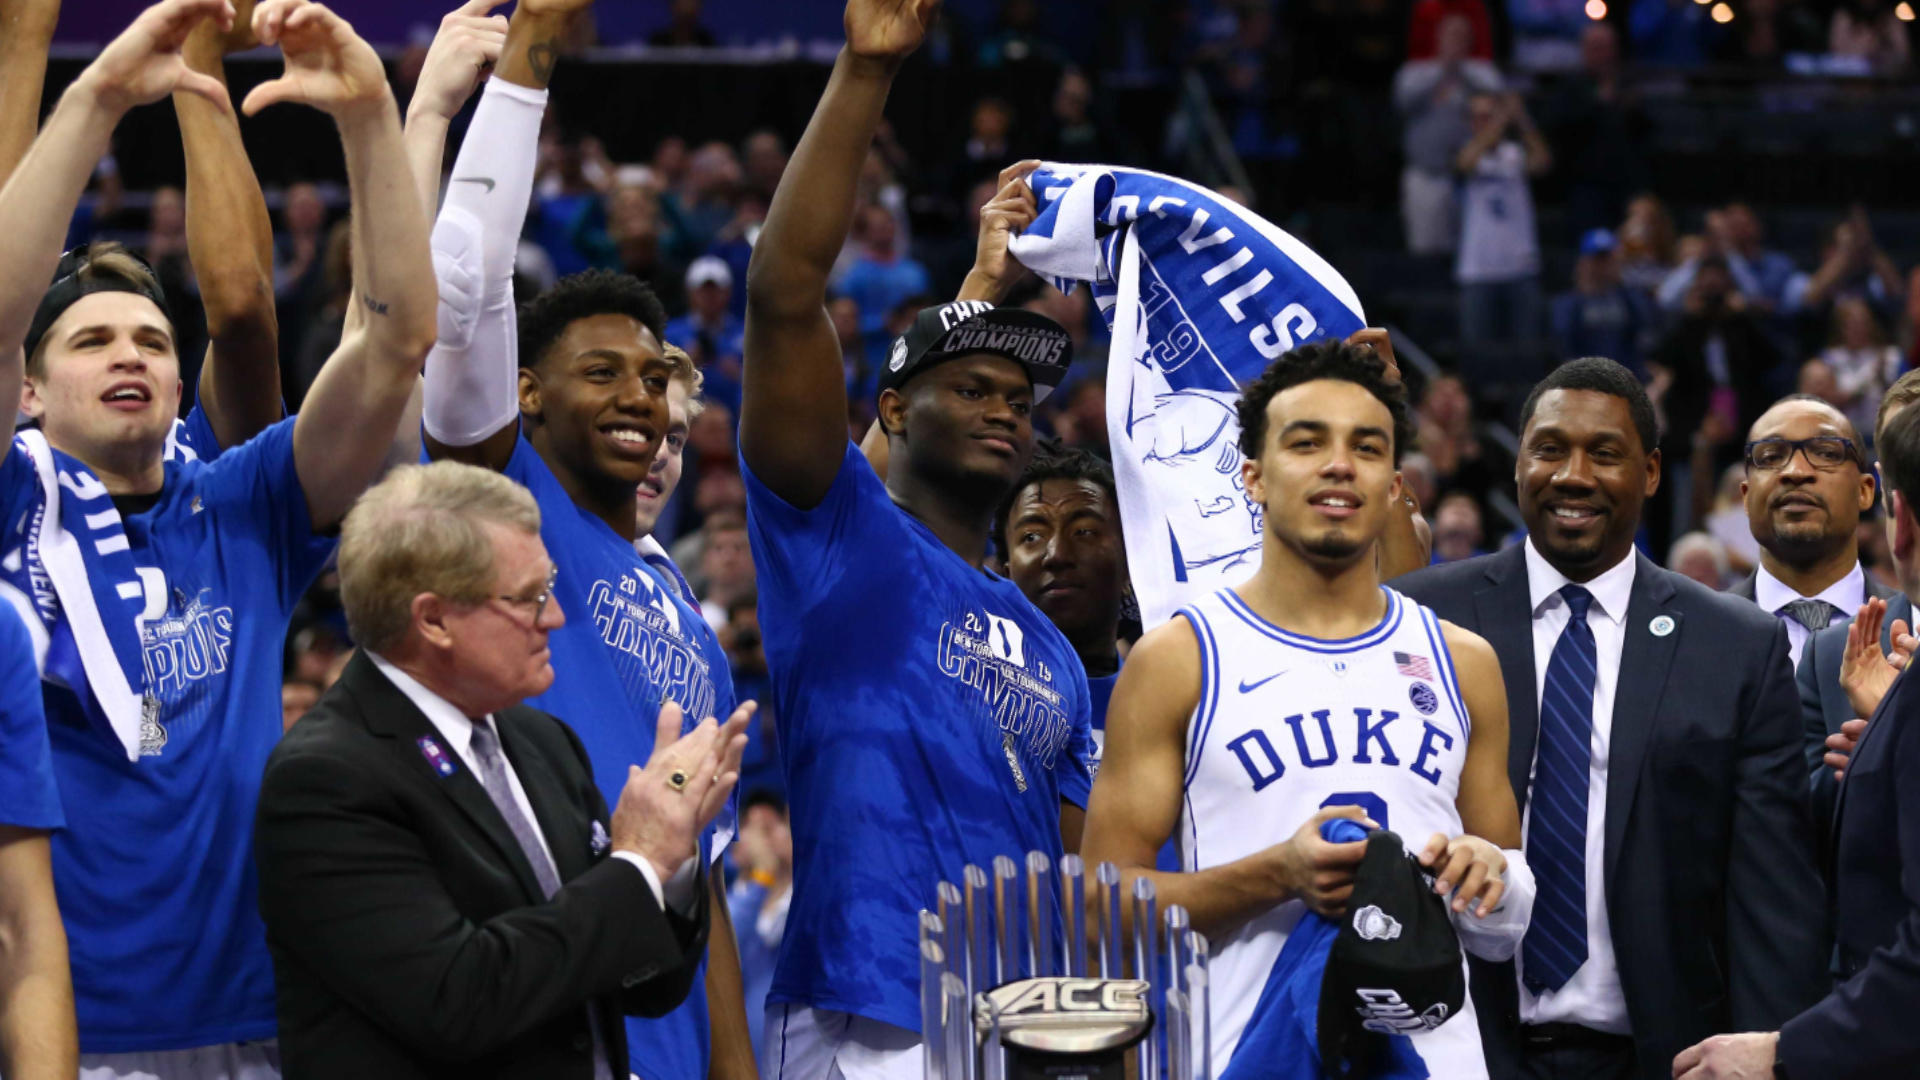 March Madness live stream: Watch 2019 NCAA Tournament basketball streaming free online Friday